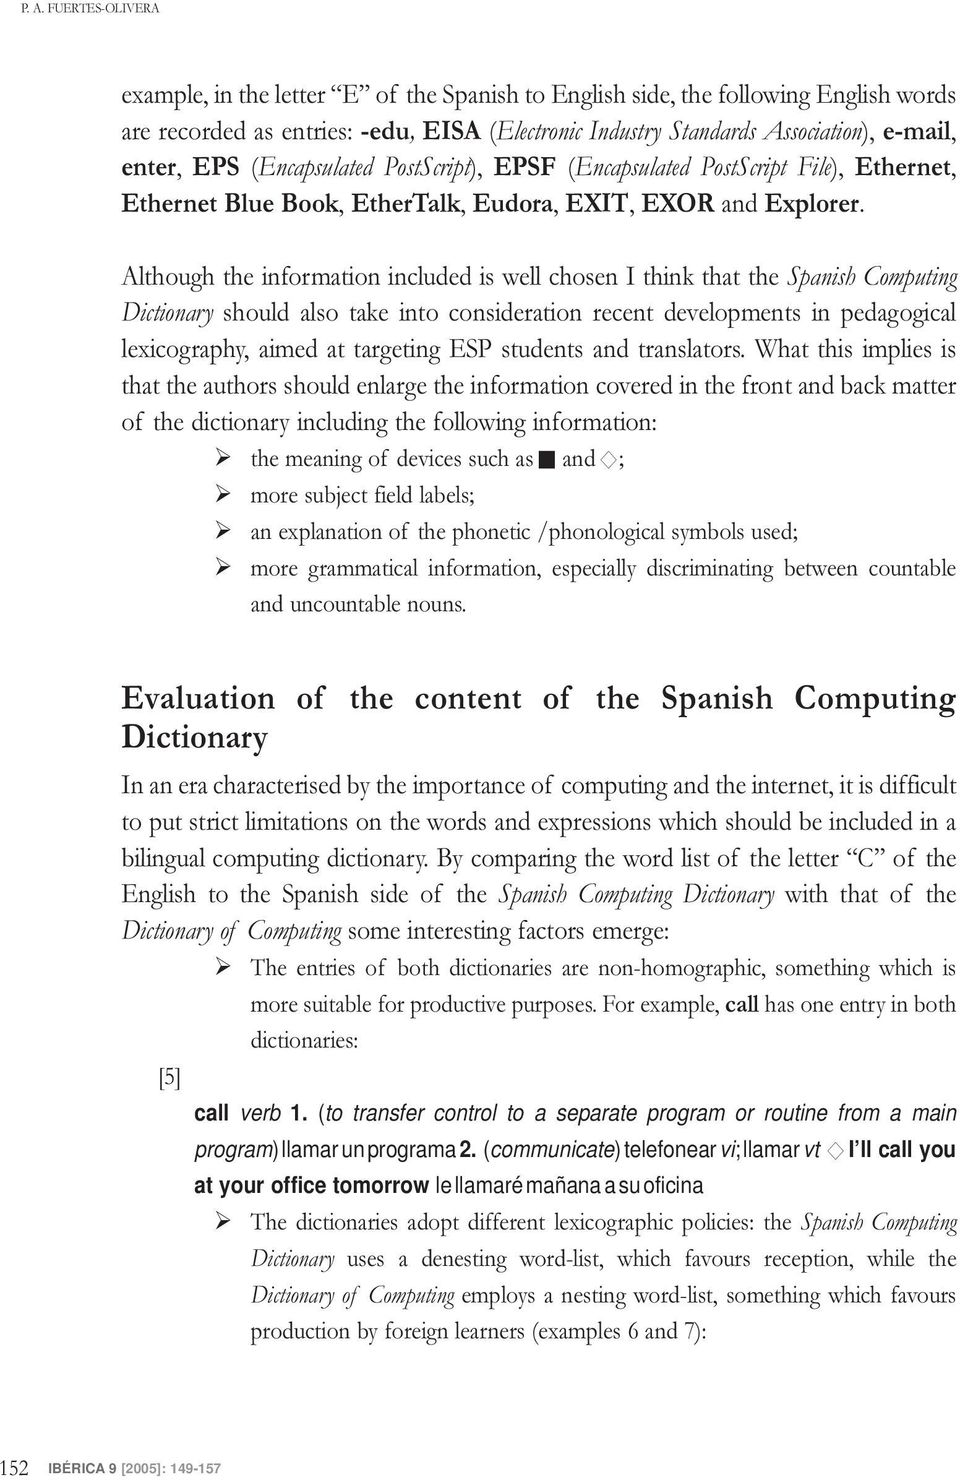 Although the information included is well chosen I think that the Spanish Computing Dictionary should also take into consideration recent developments in pedagogical lexicography, aimed at targeting